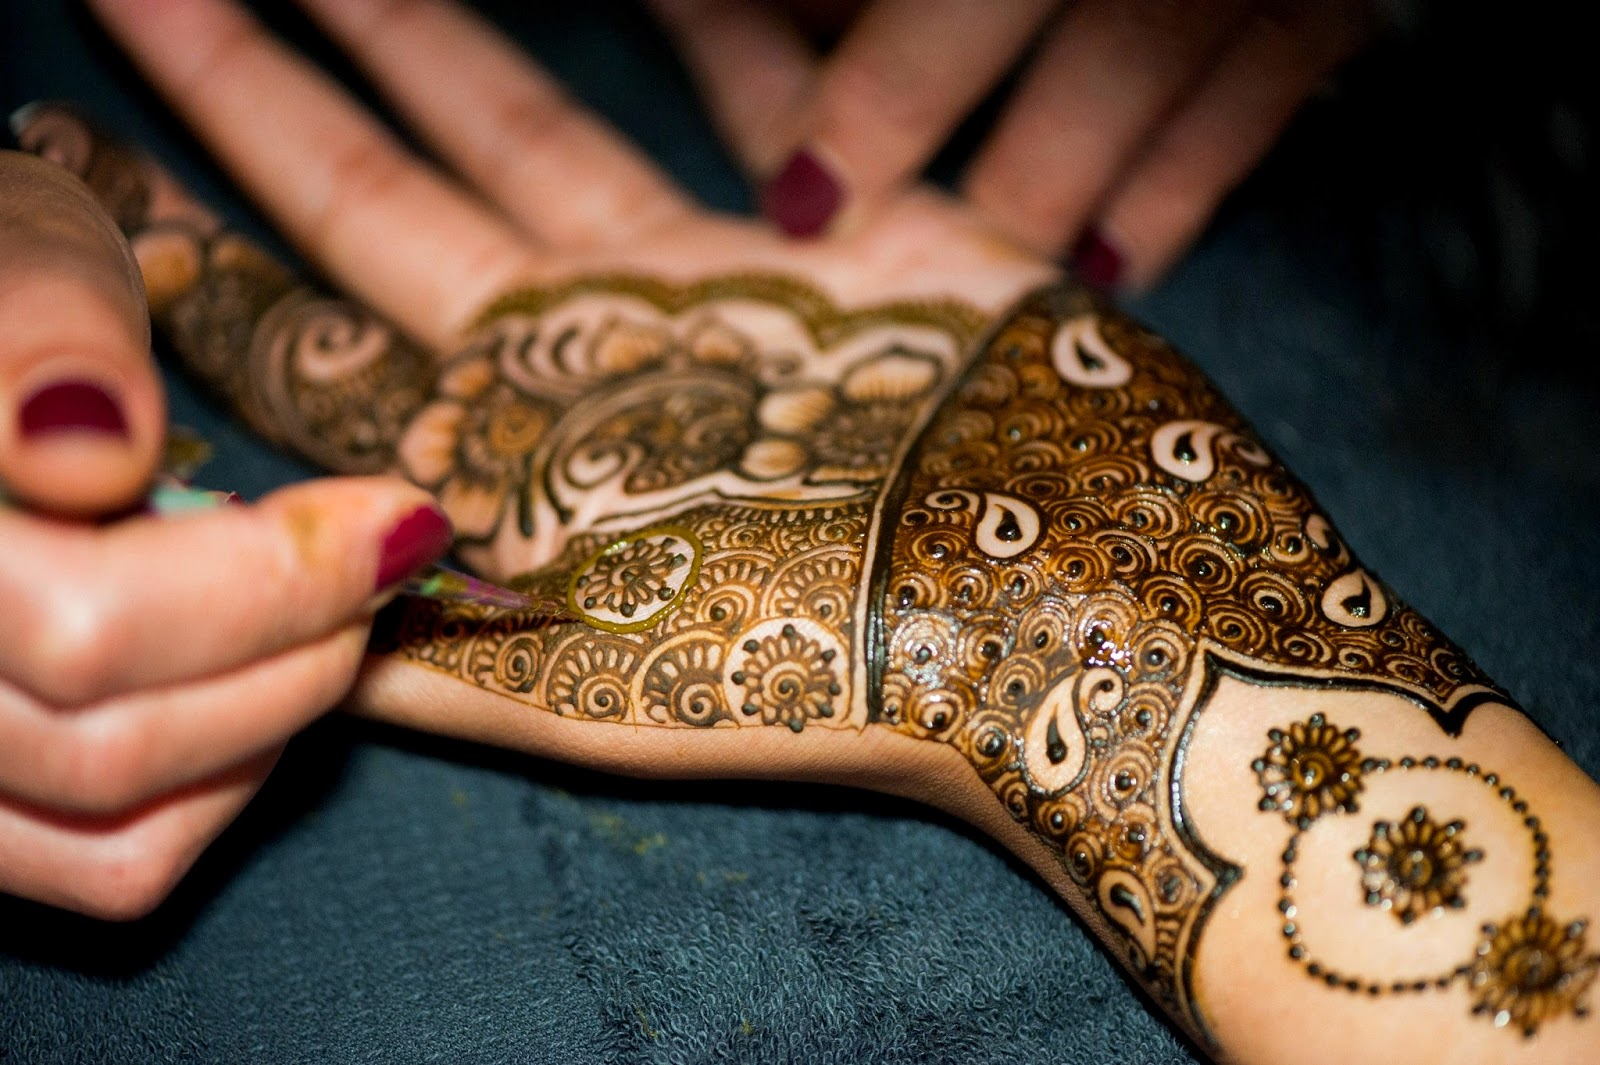 Mehndi Designs Please : Mehndi bridal designs mehandi mehendi